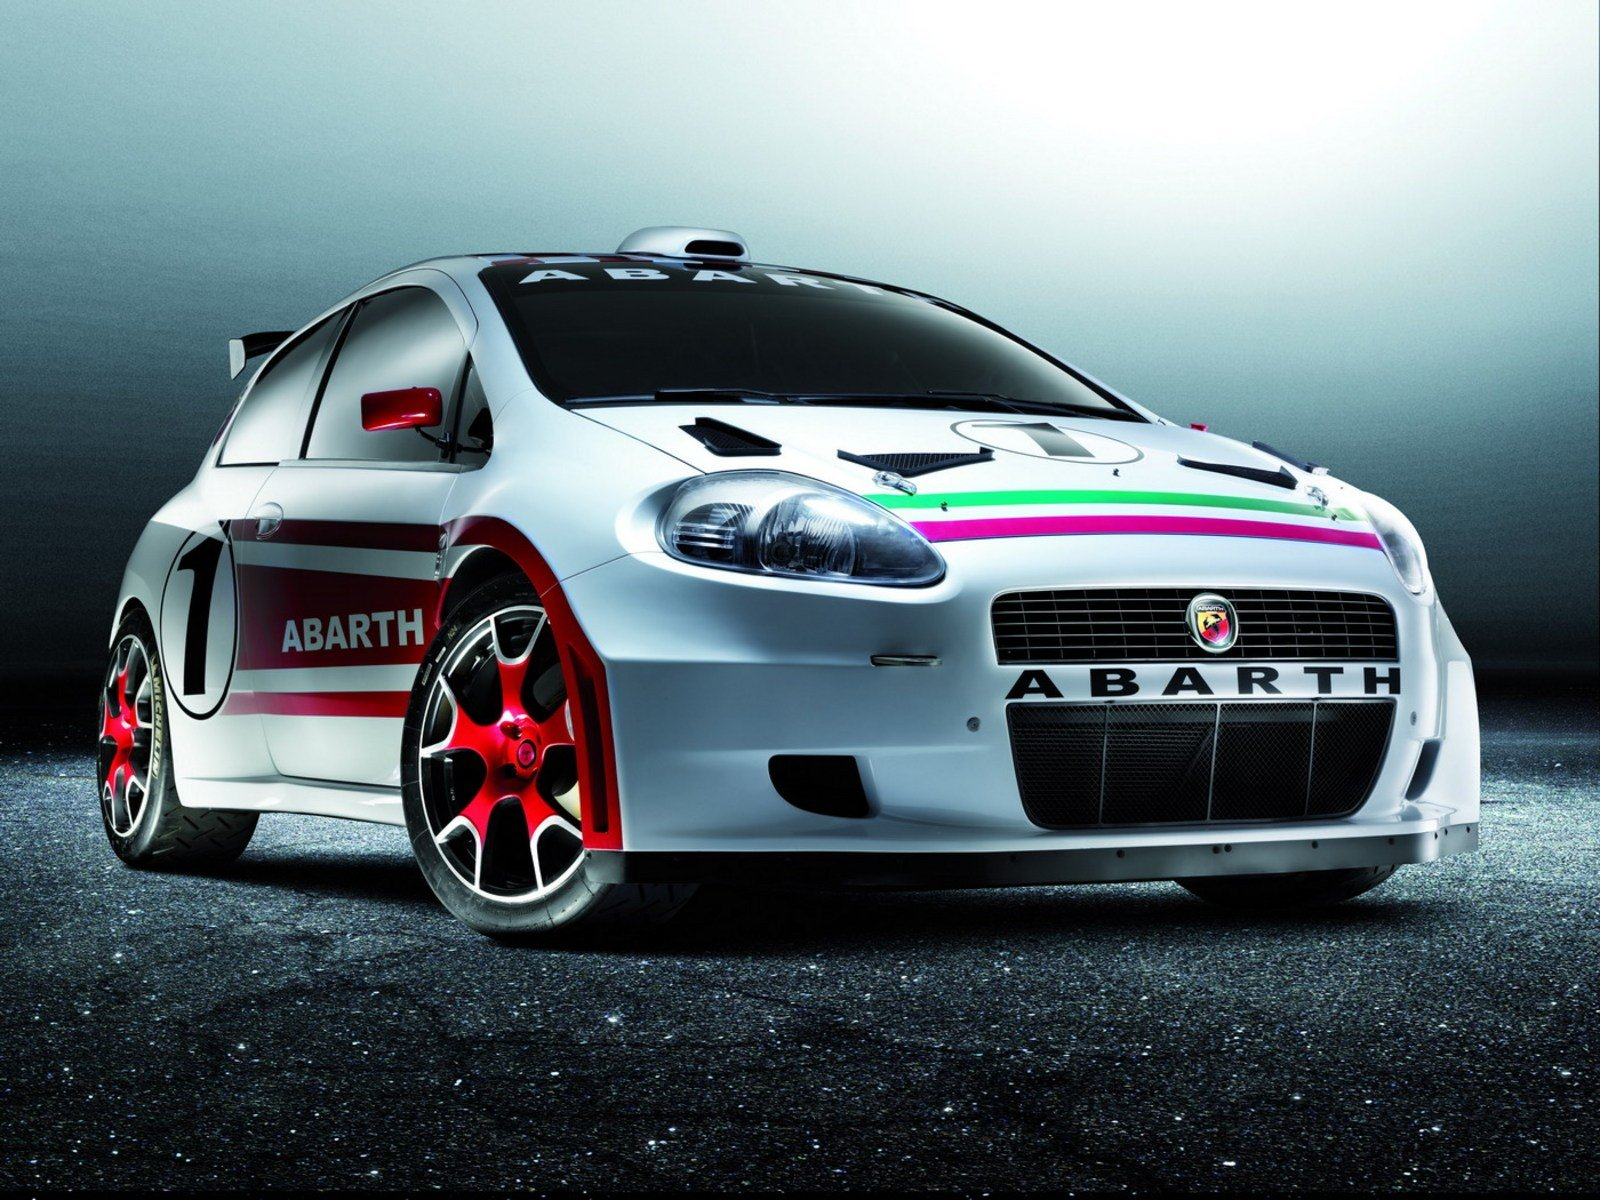 2007 fiat grande punto abarth s2000 review - top speed